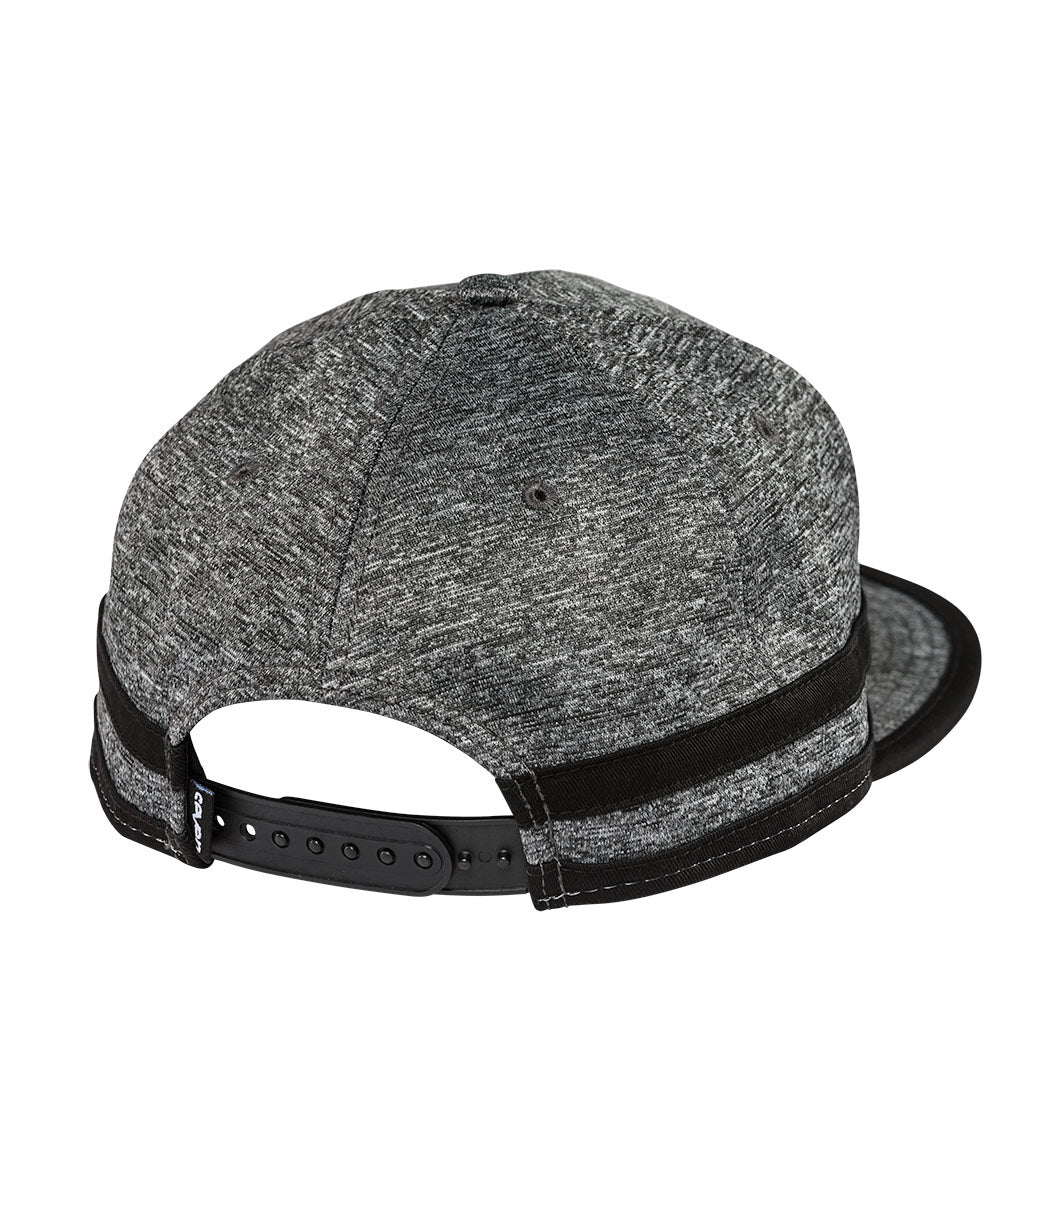 Slider Hat - Charcoal Gray